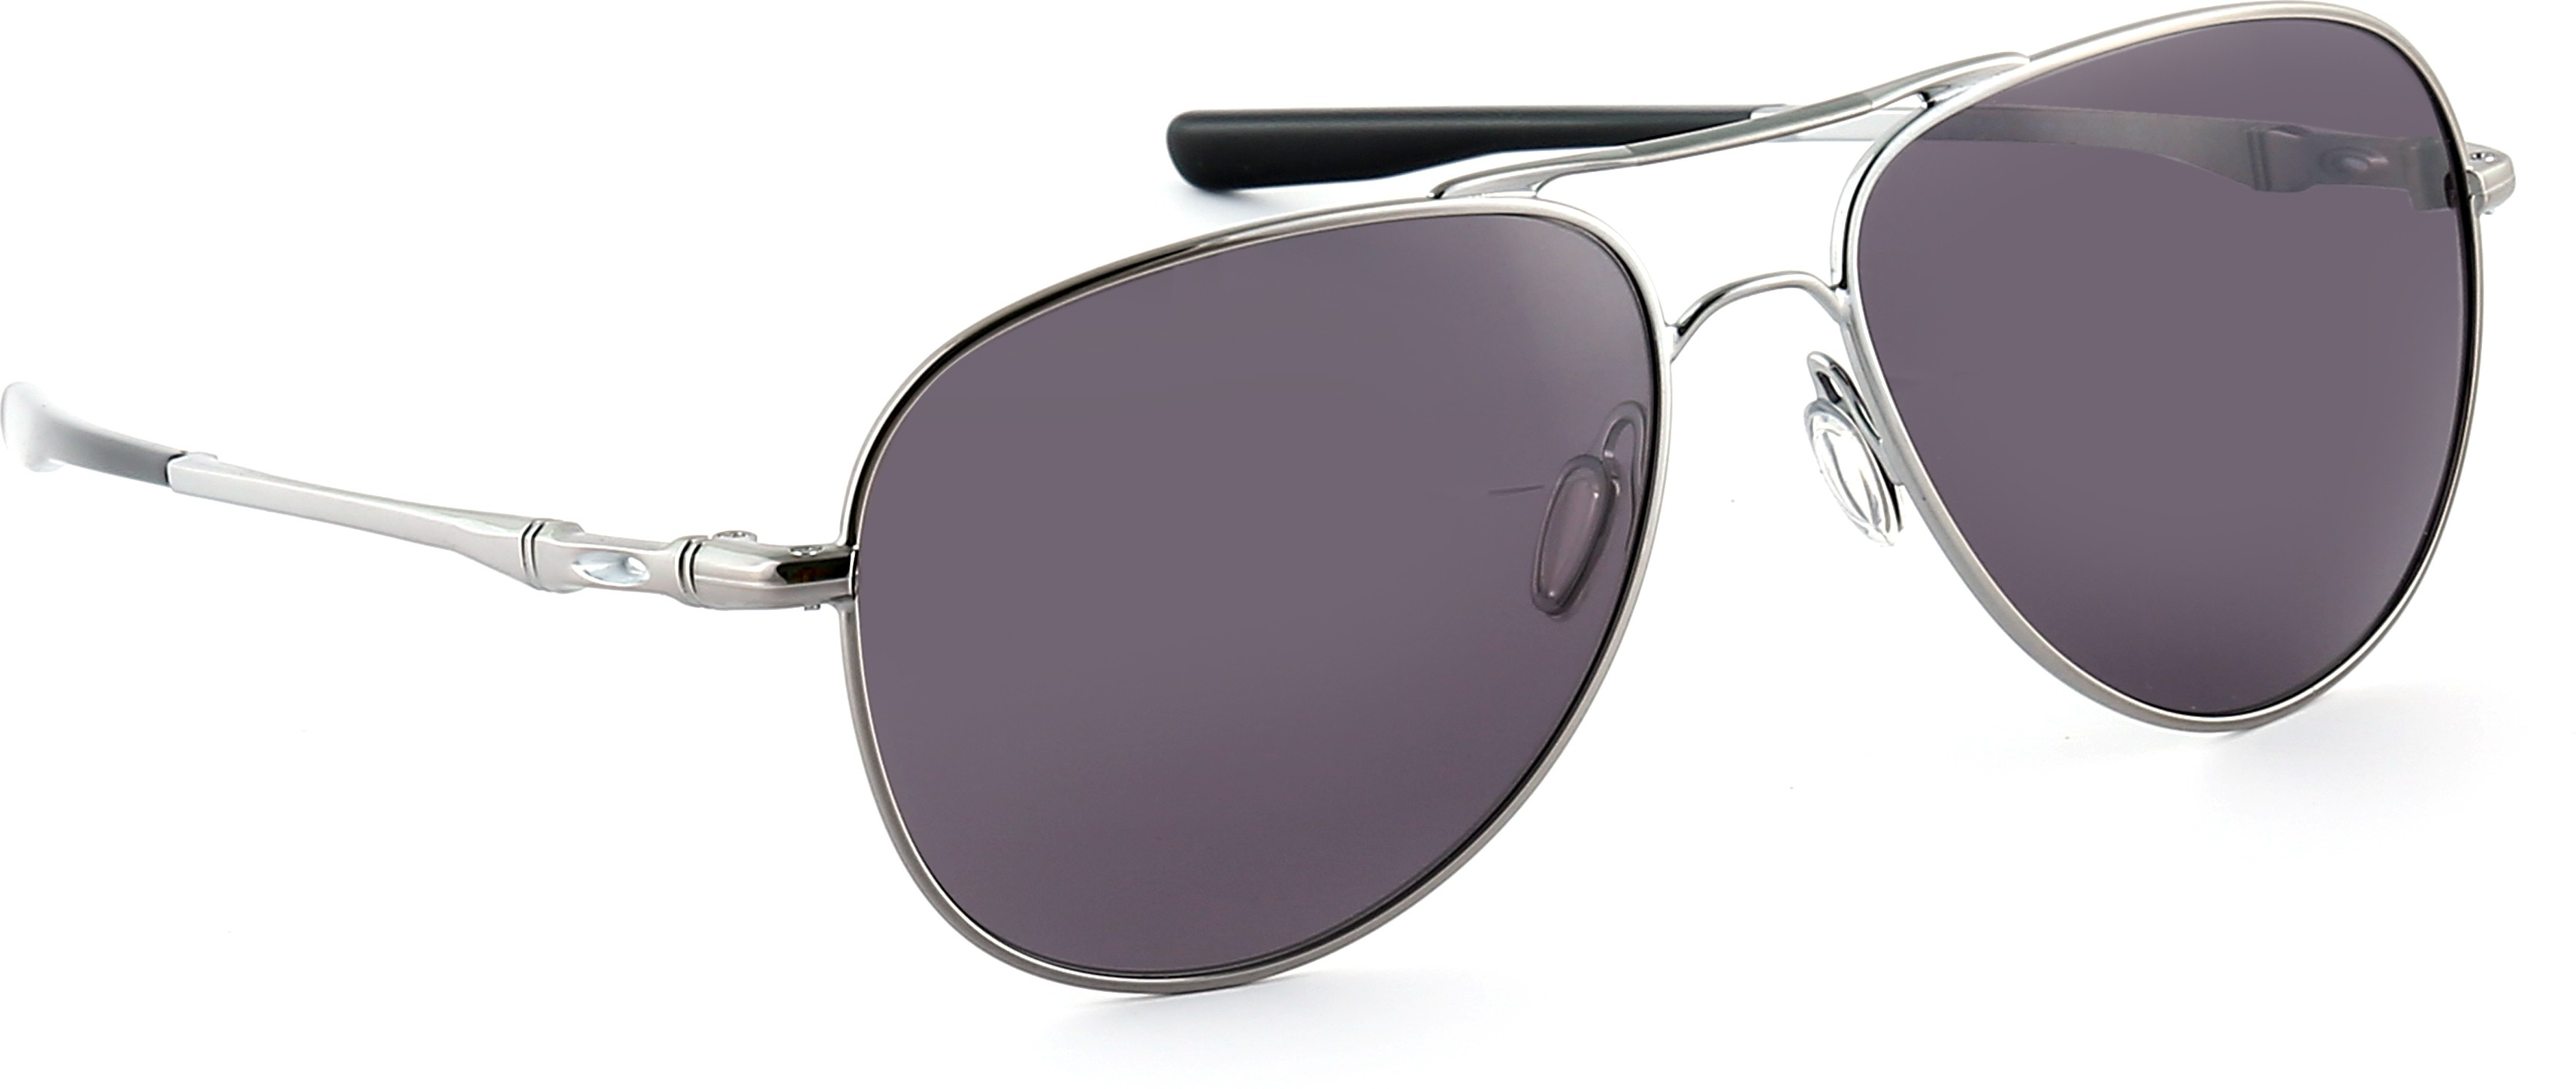 Deals - Delhi - Oakley, Ray-Ban... <br> Sunglasses<br> Category - sunglasses<br> Business - Flipkart.com